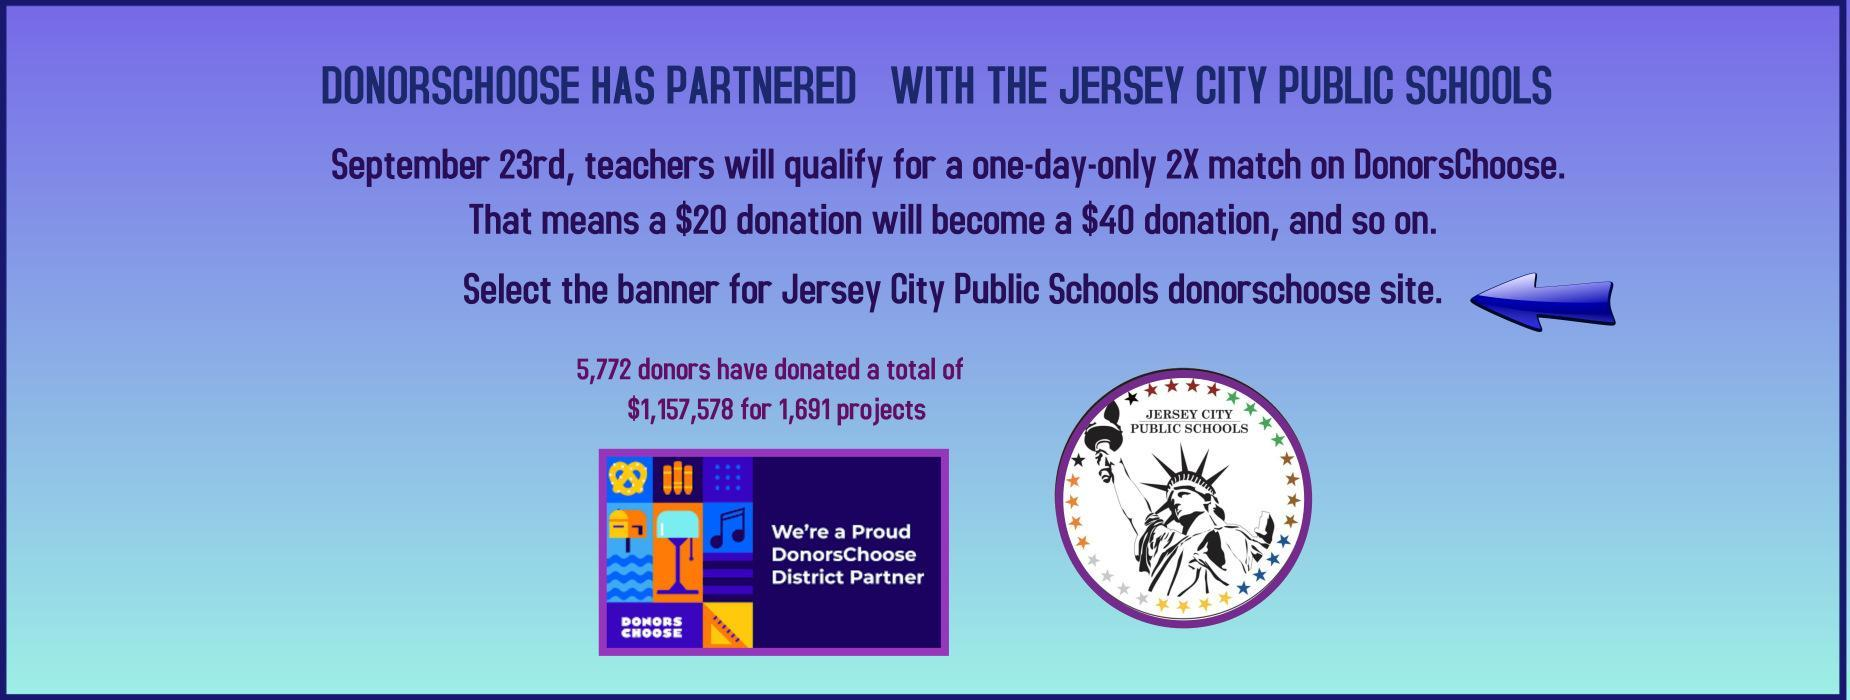 jcps donors choose